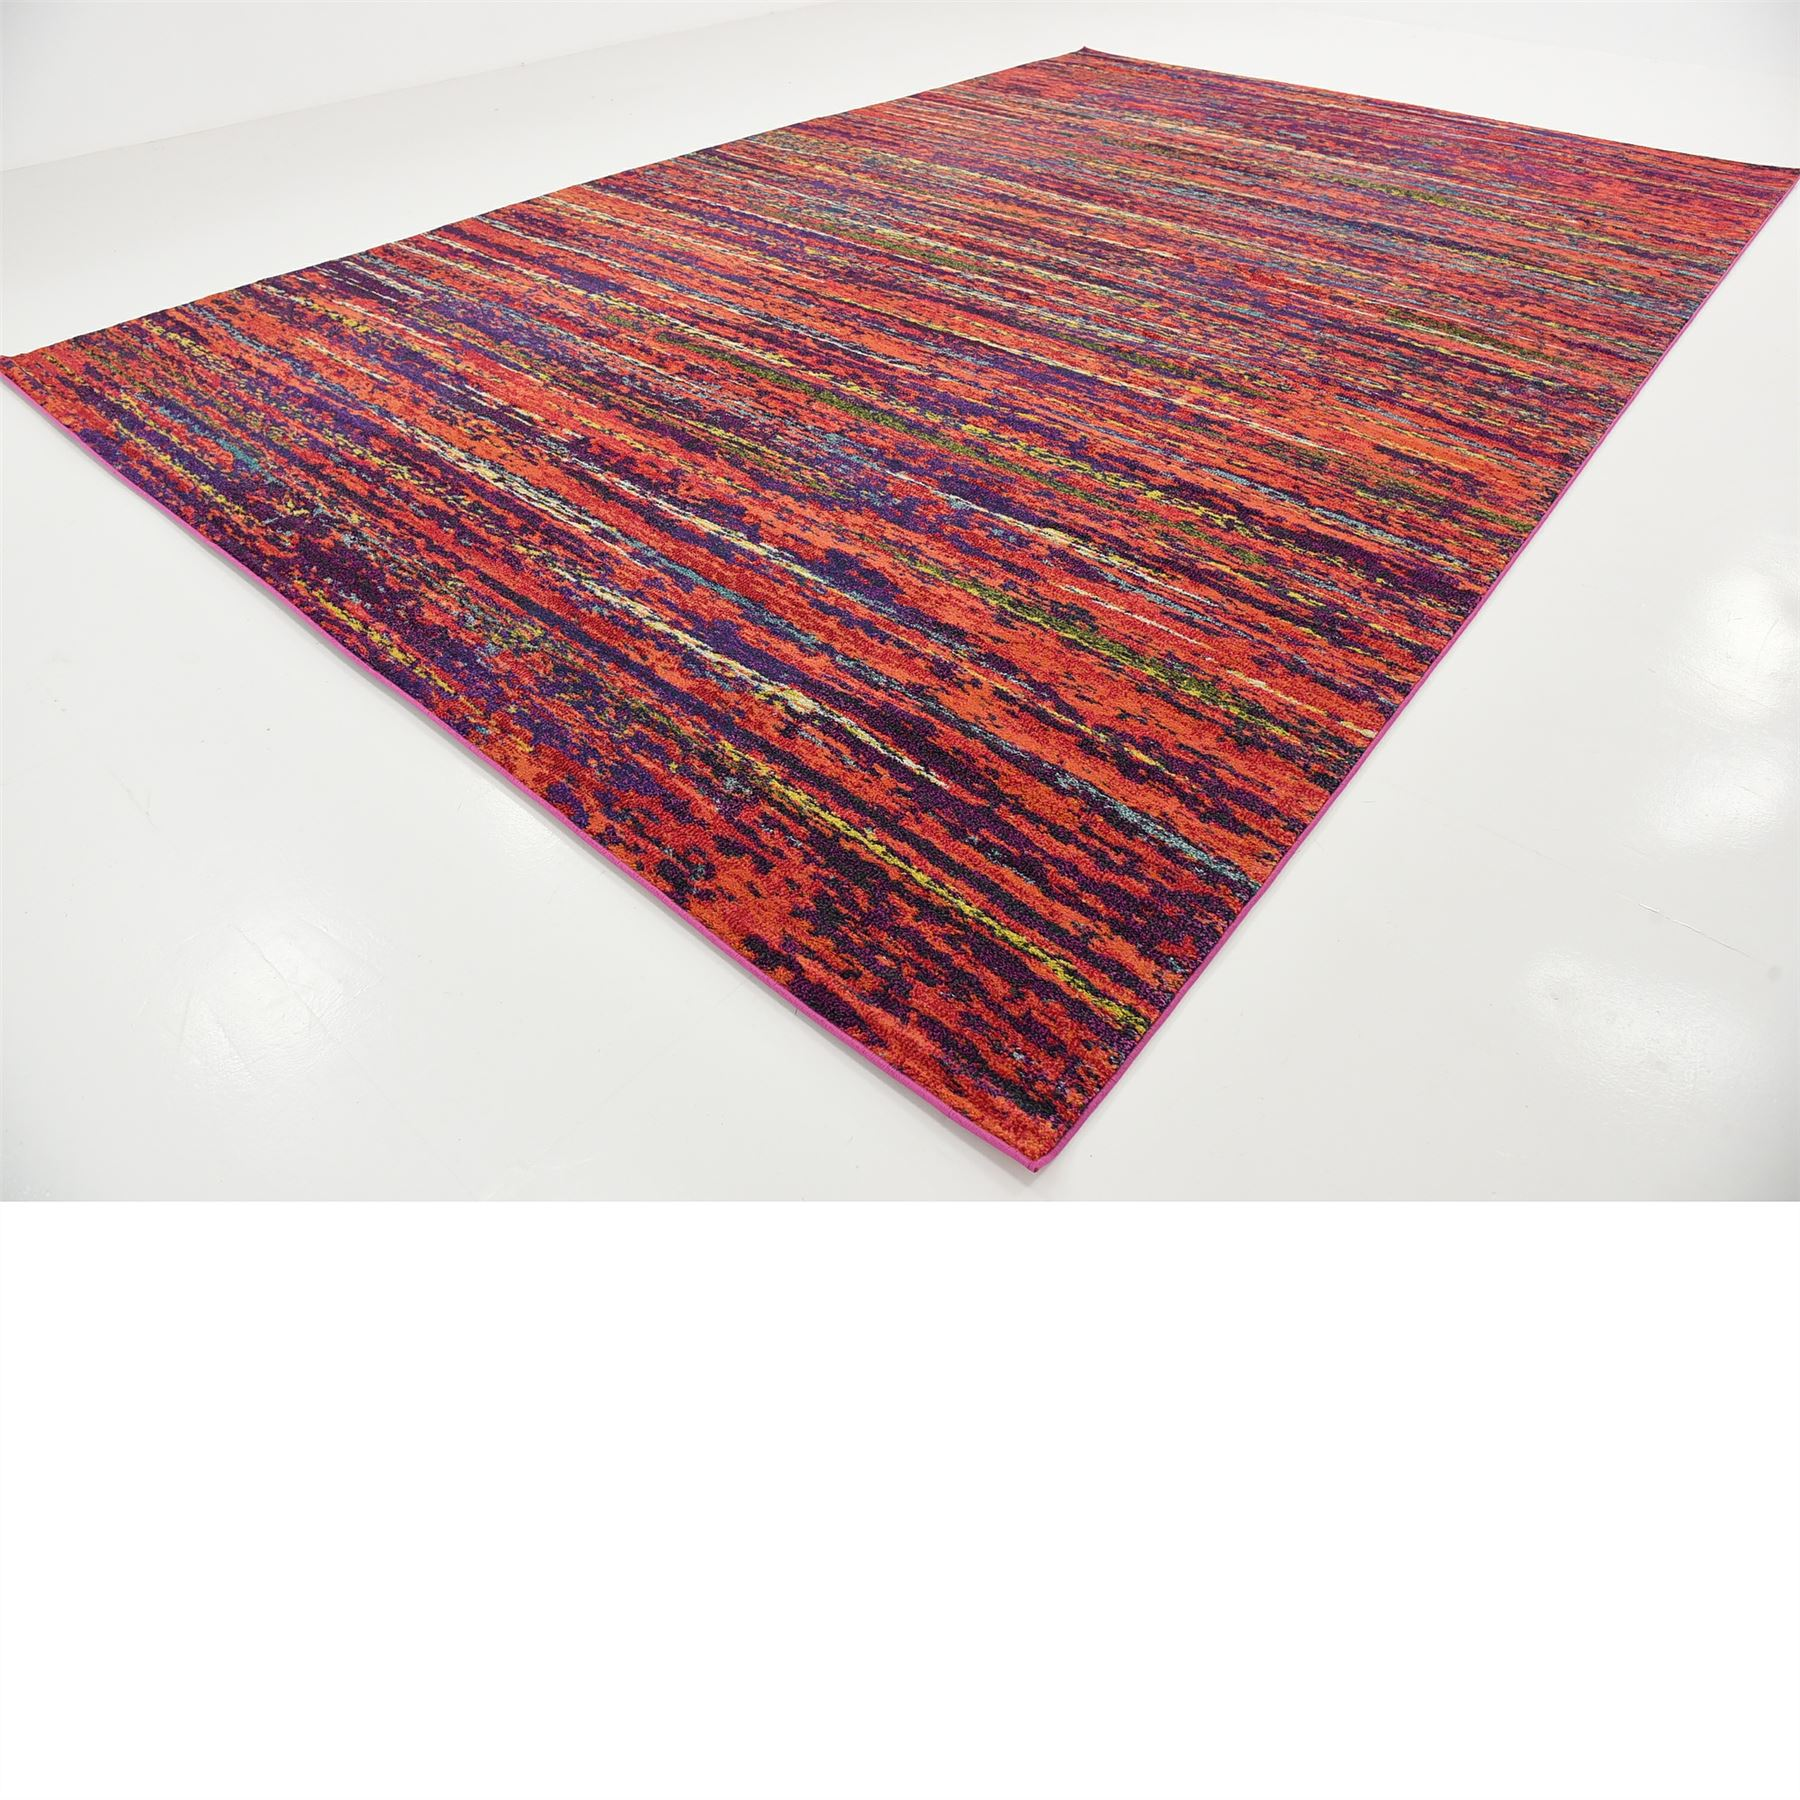 Modern Looking Rug: Modern Style Colorful Area Rug Contemporary Design Multi